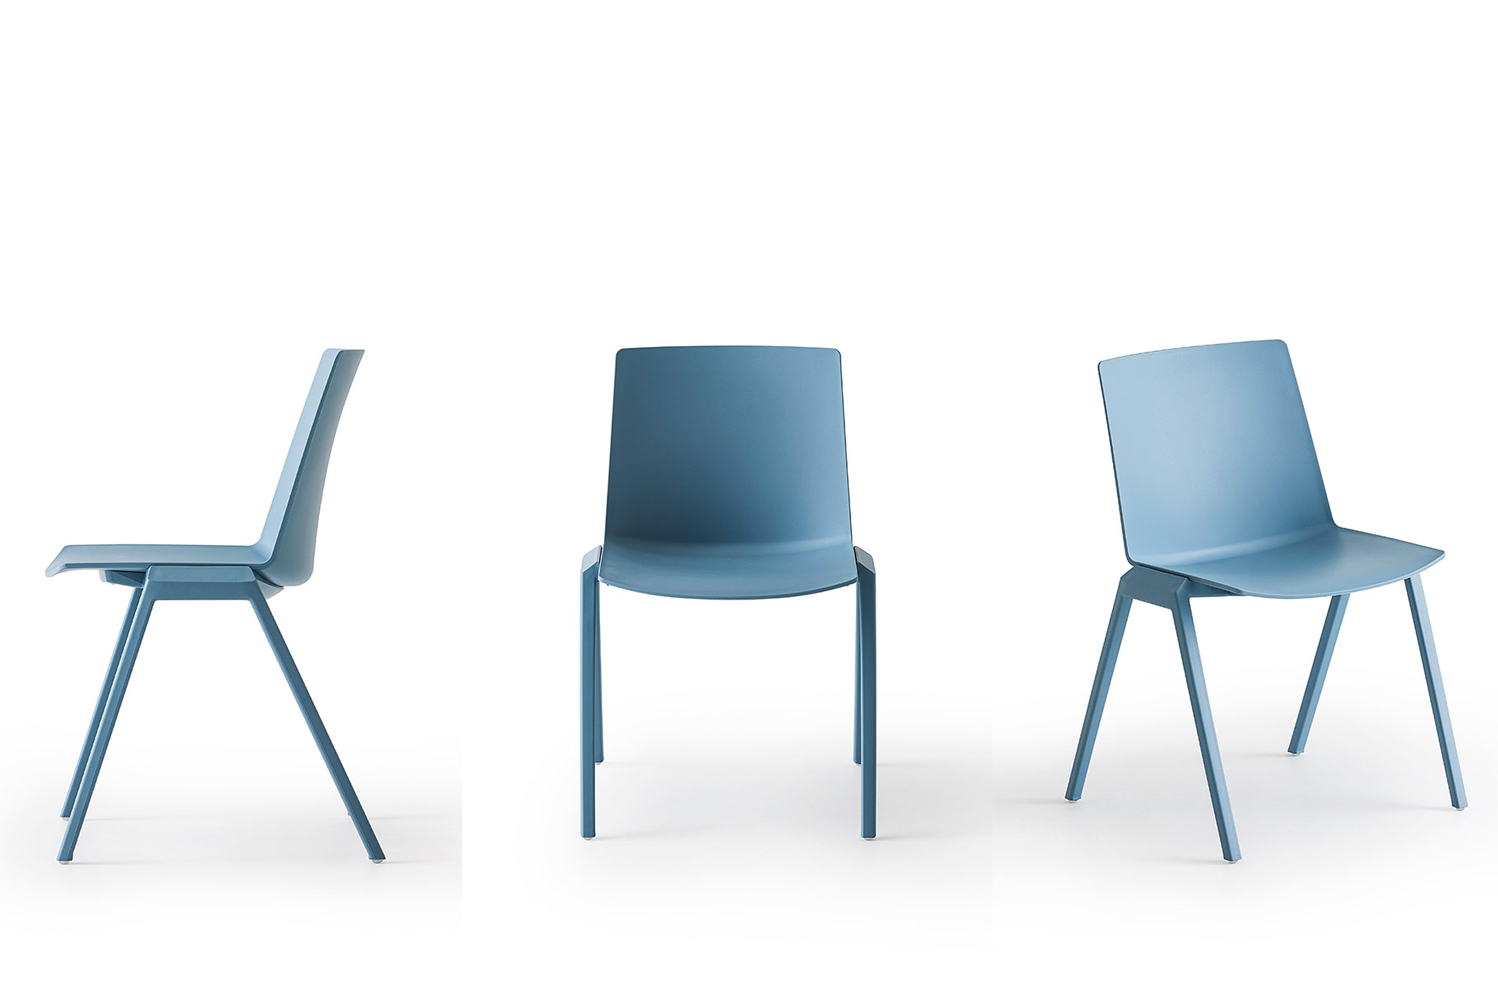 Magnuson Group launched a new indoor/outdoor chair, Joule, marked by clean design and a soft rounded backrest.